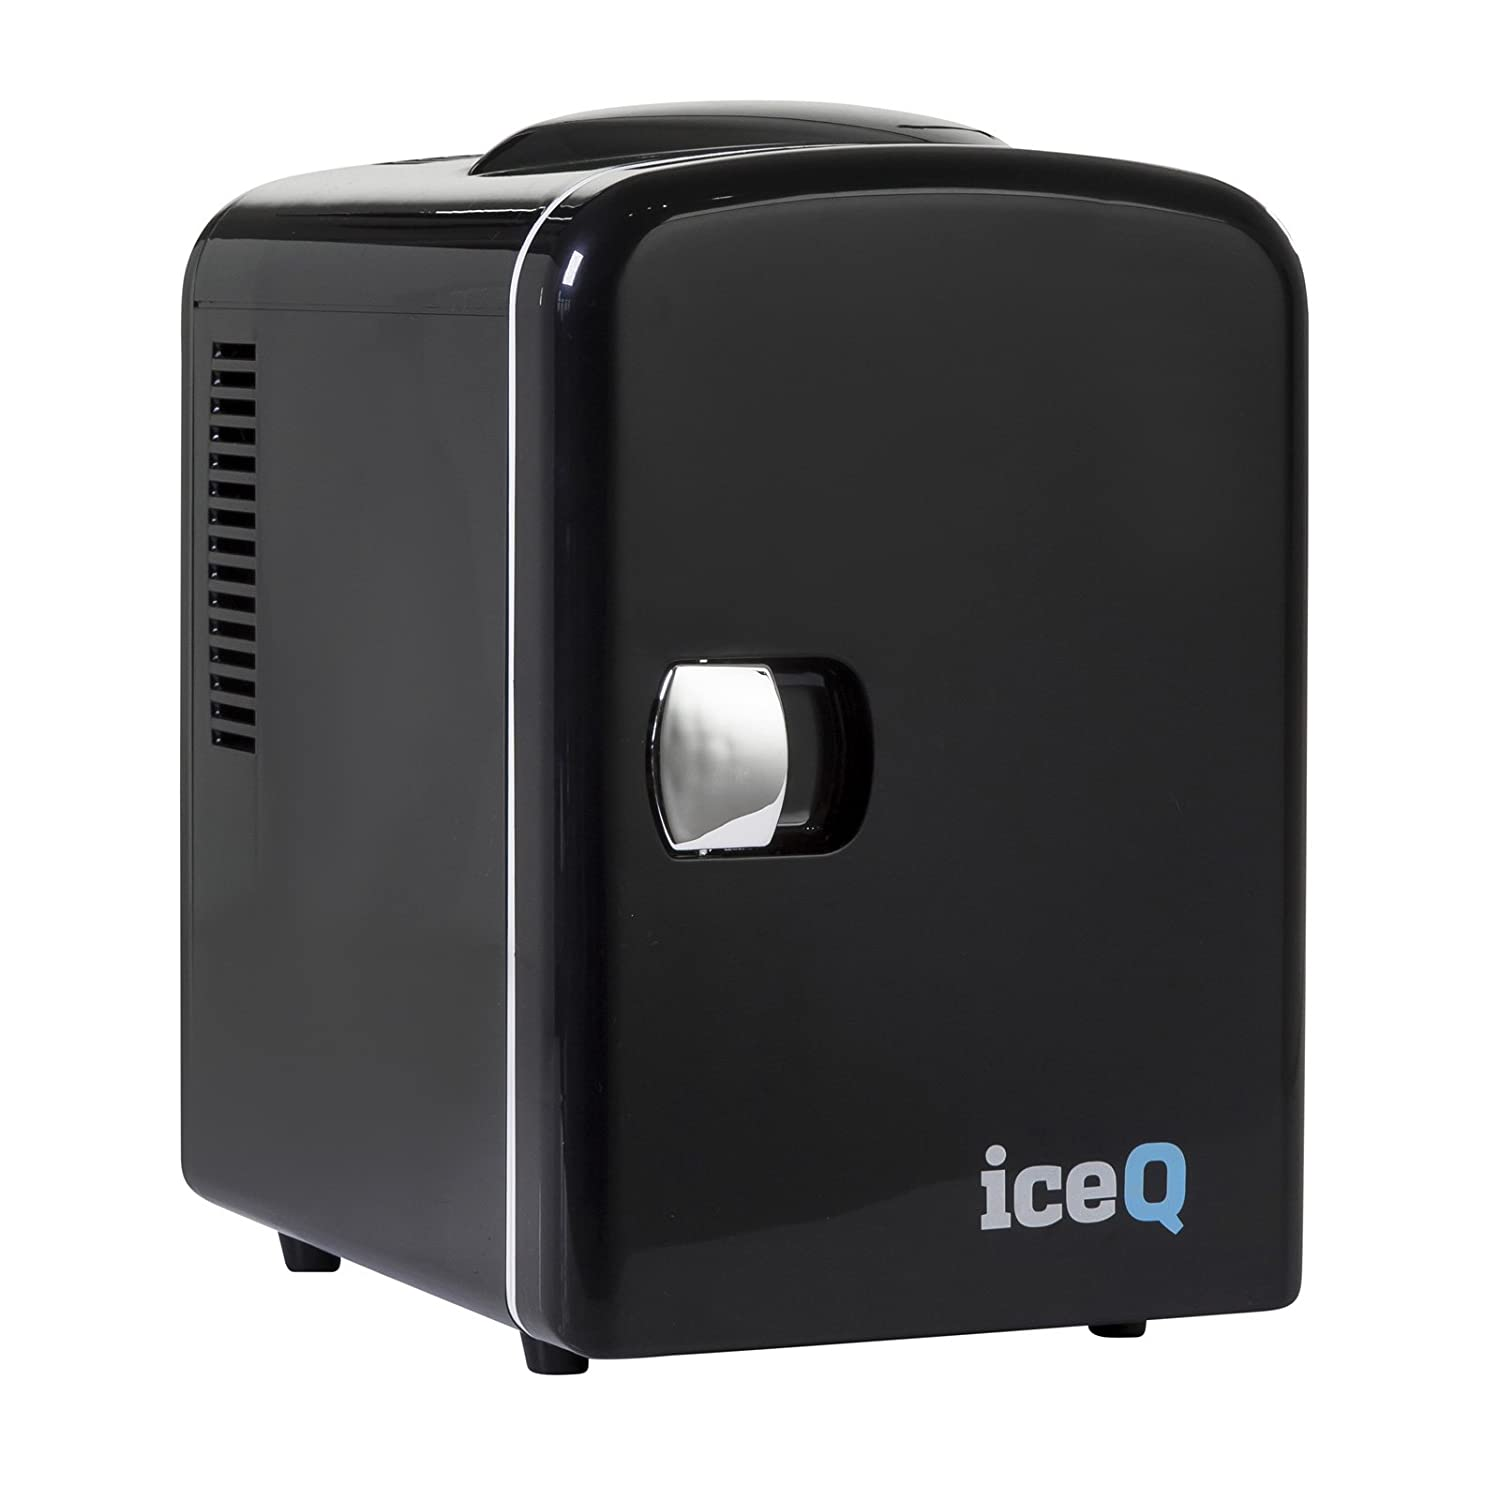 iceQ 4 Litre Small Mini Fridge Cooler - Black